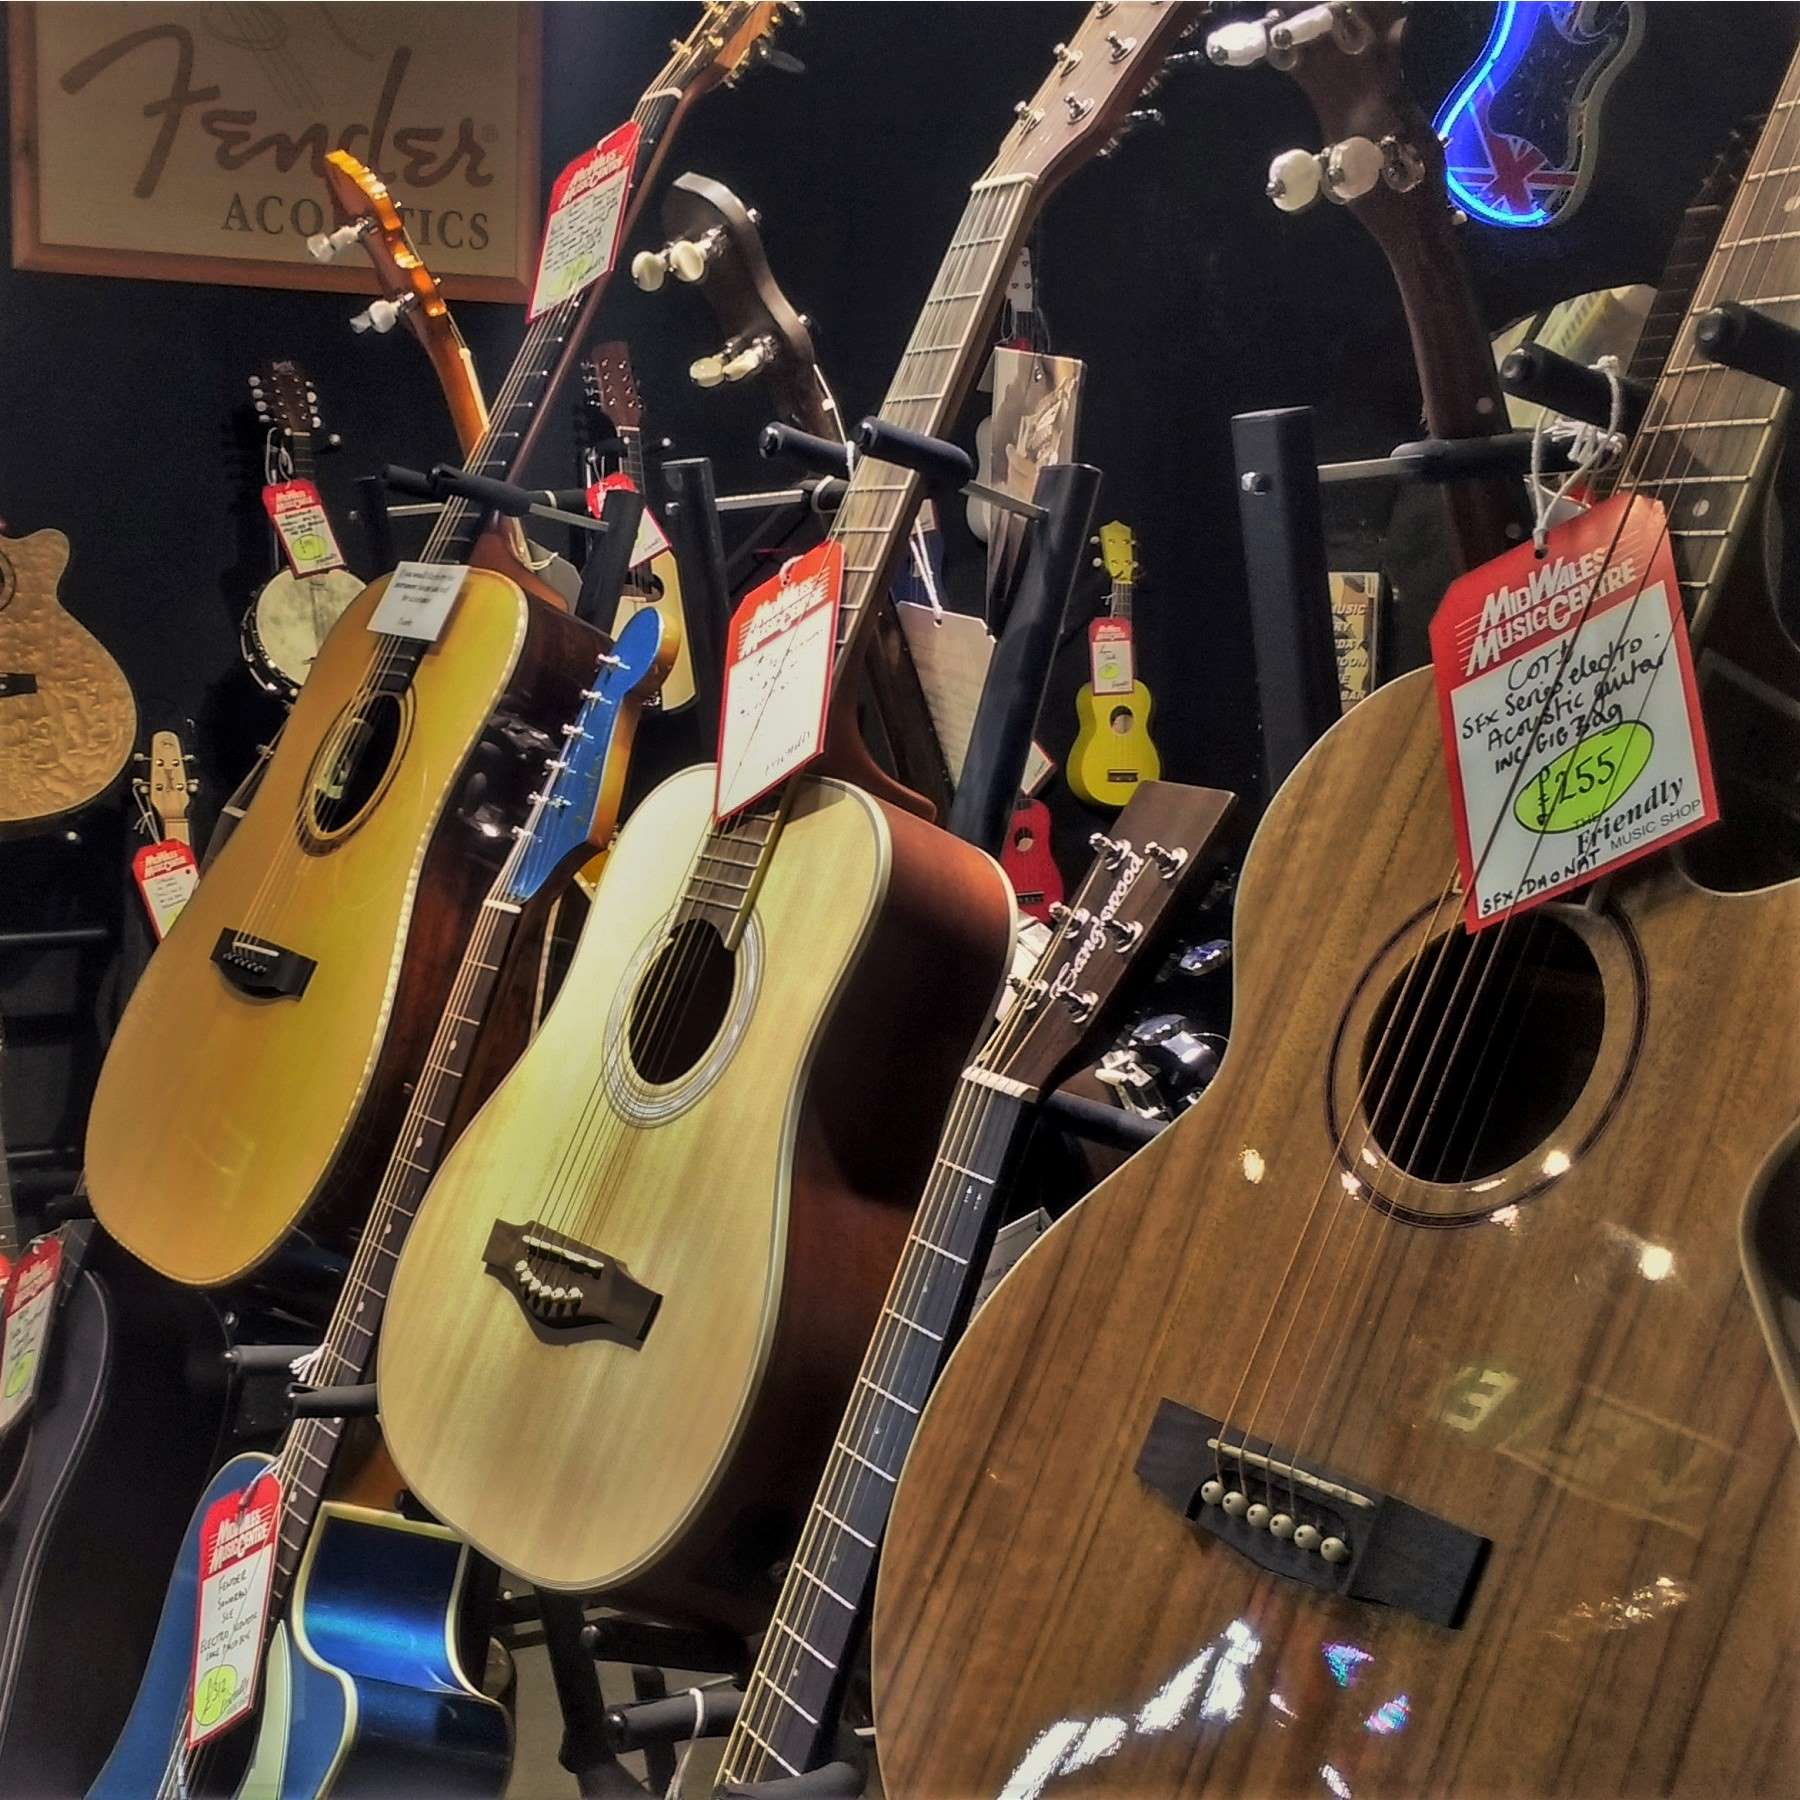 Acoustic guitar display